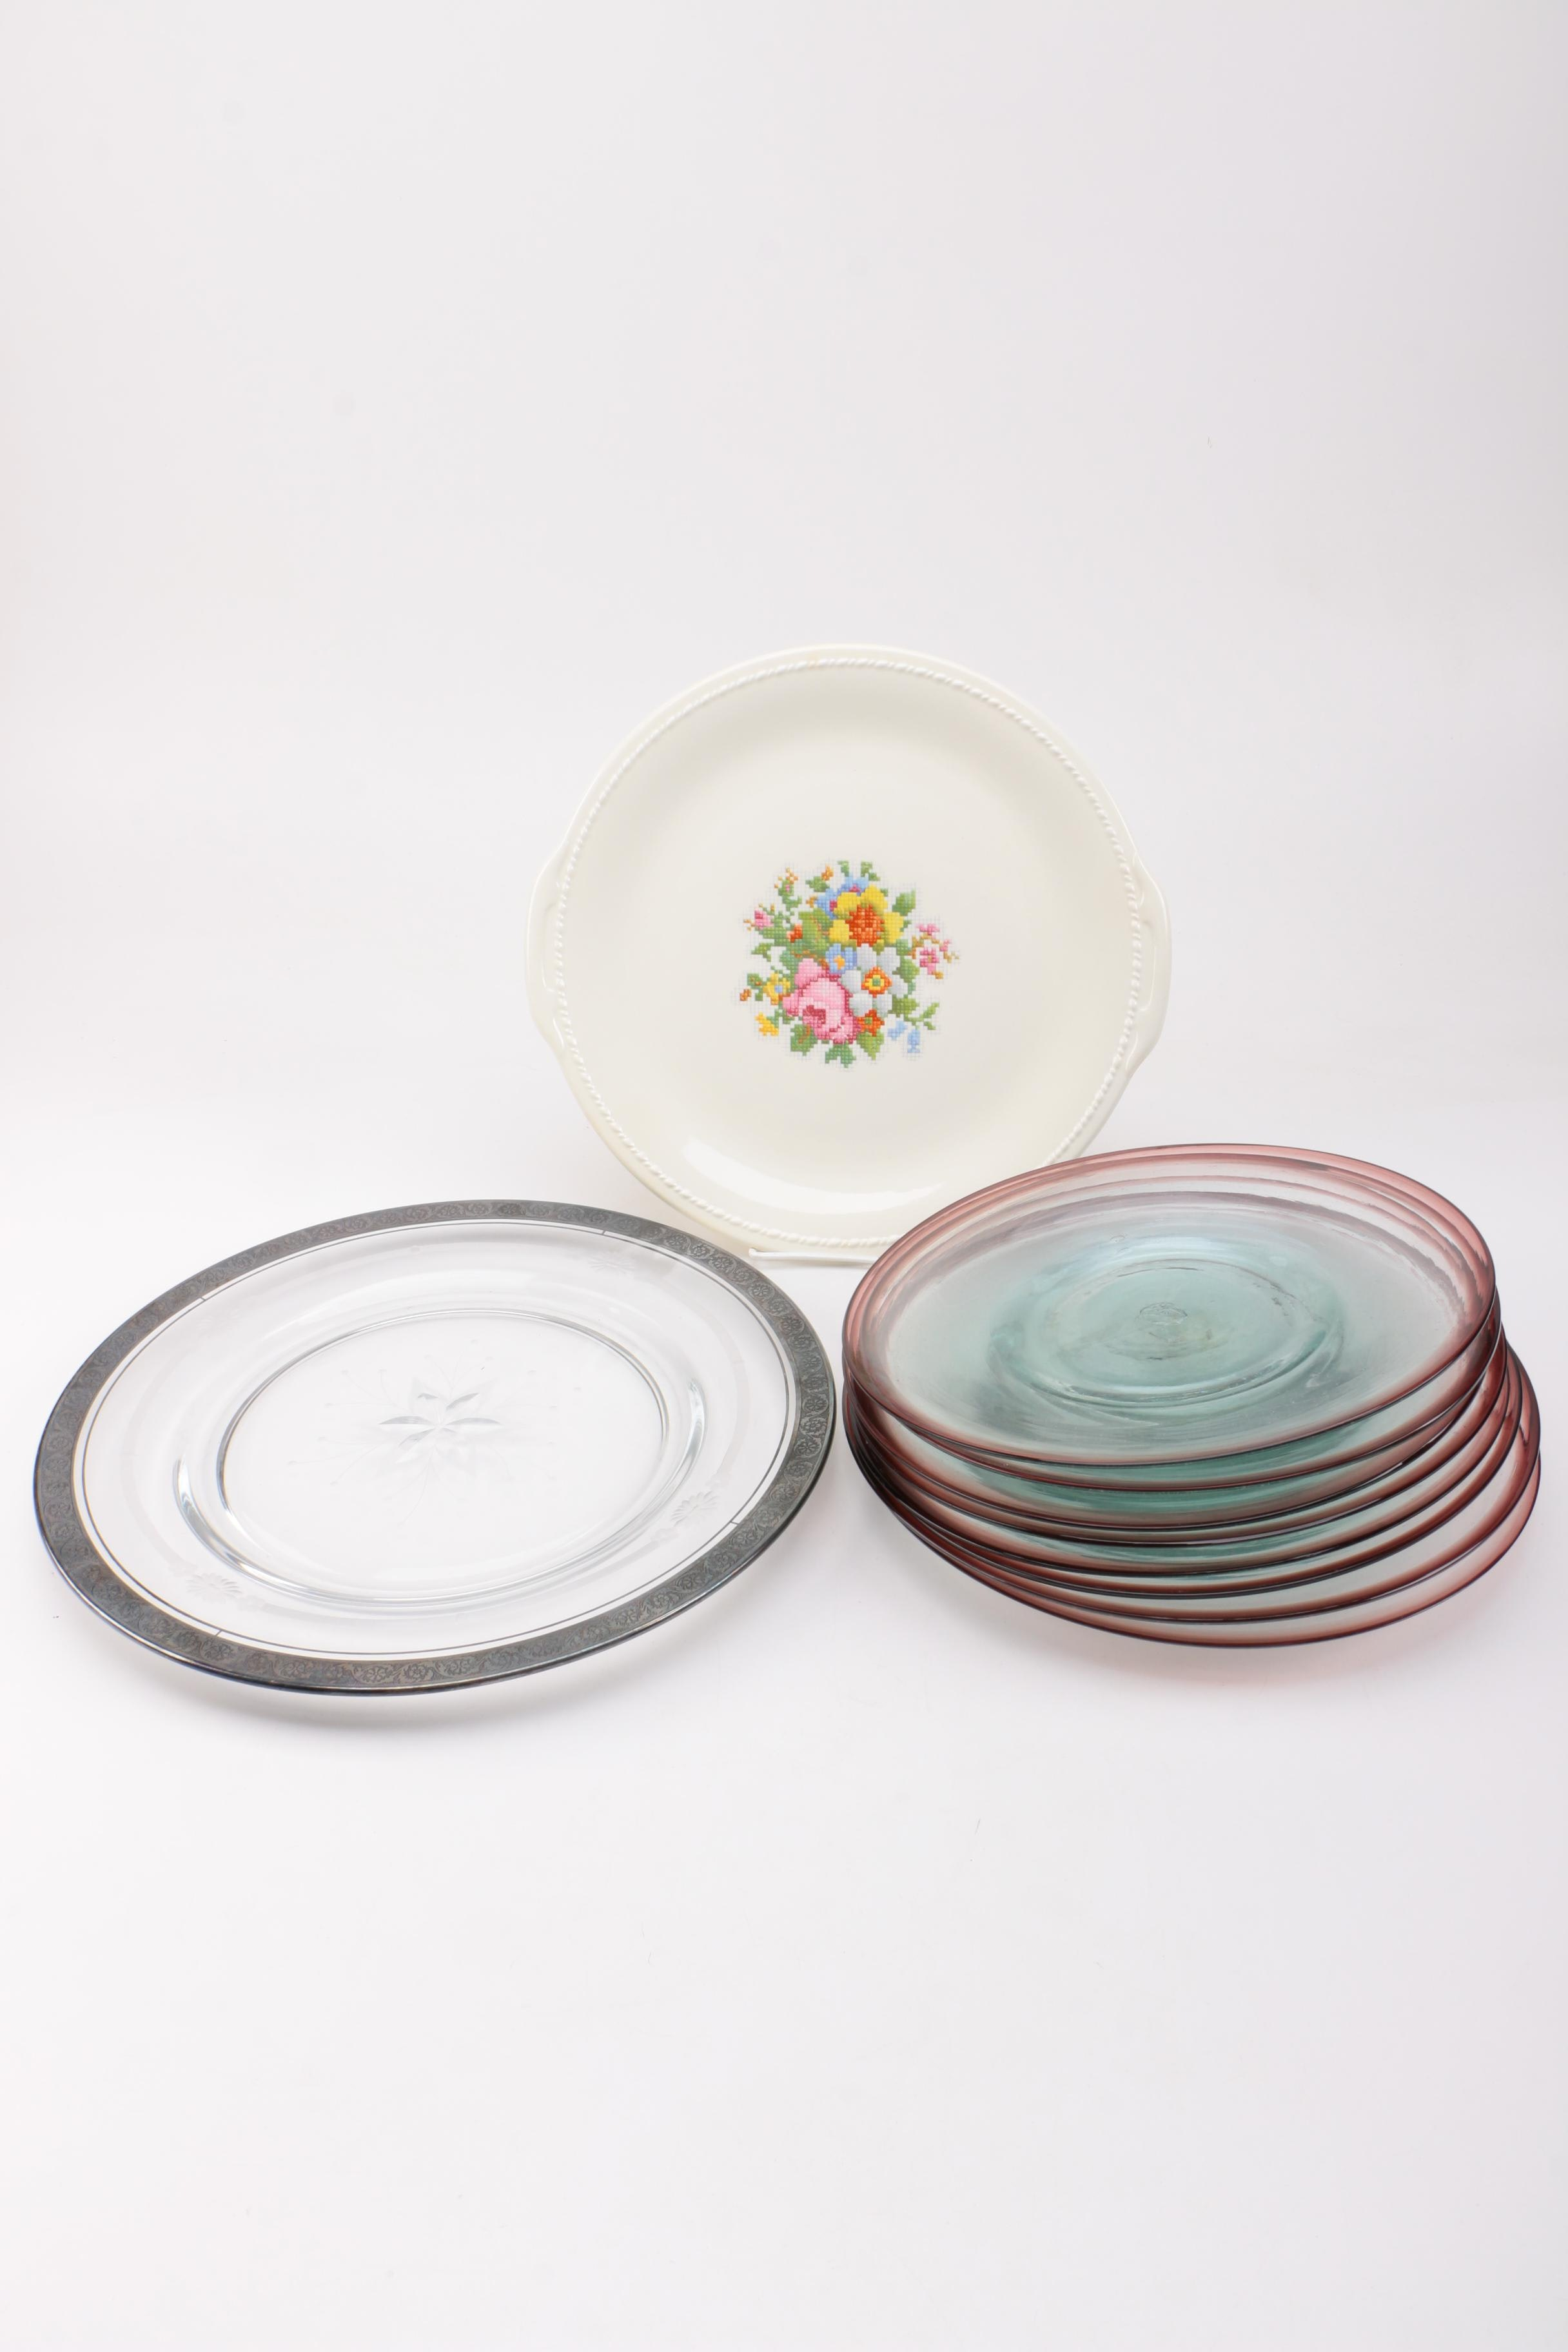 Glass and Ceramic Plates Featuring Taylor Smith & Taylor